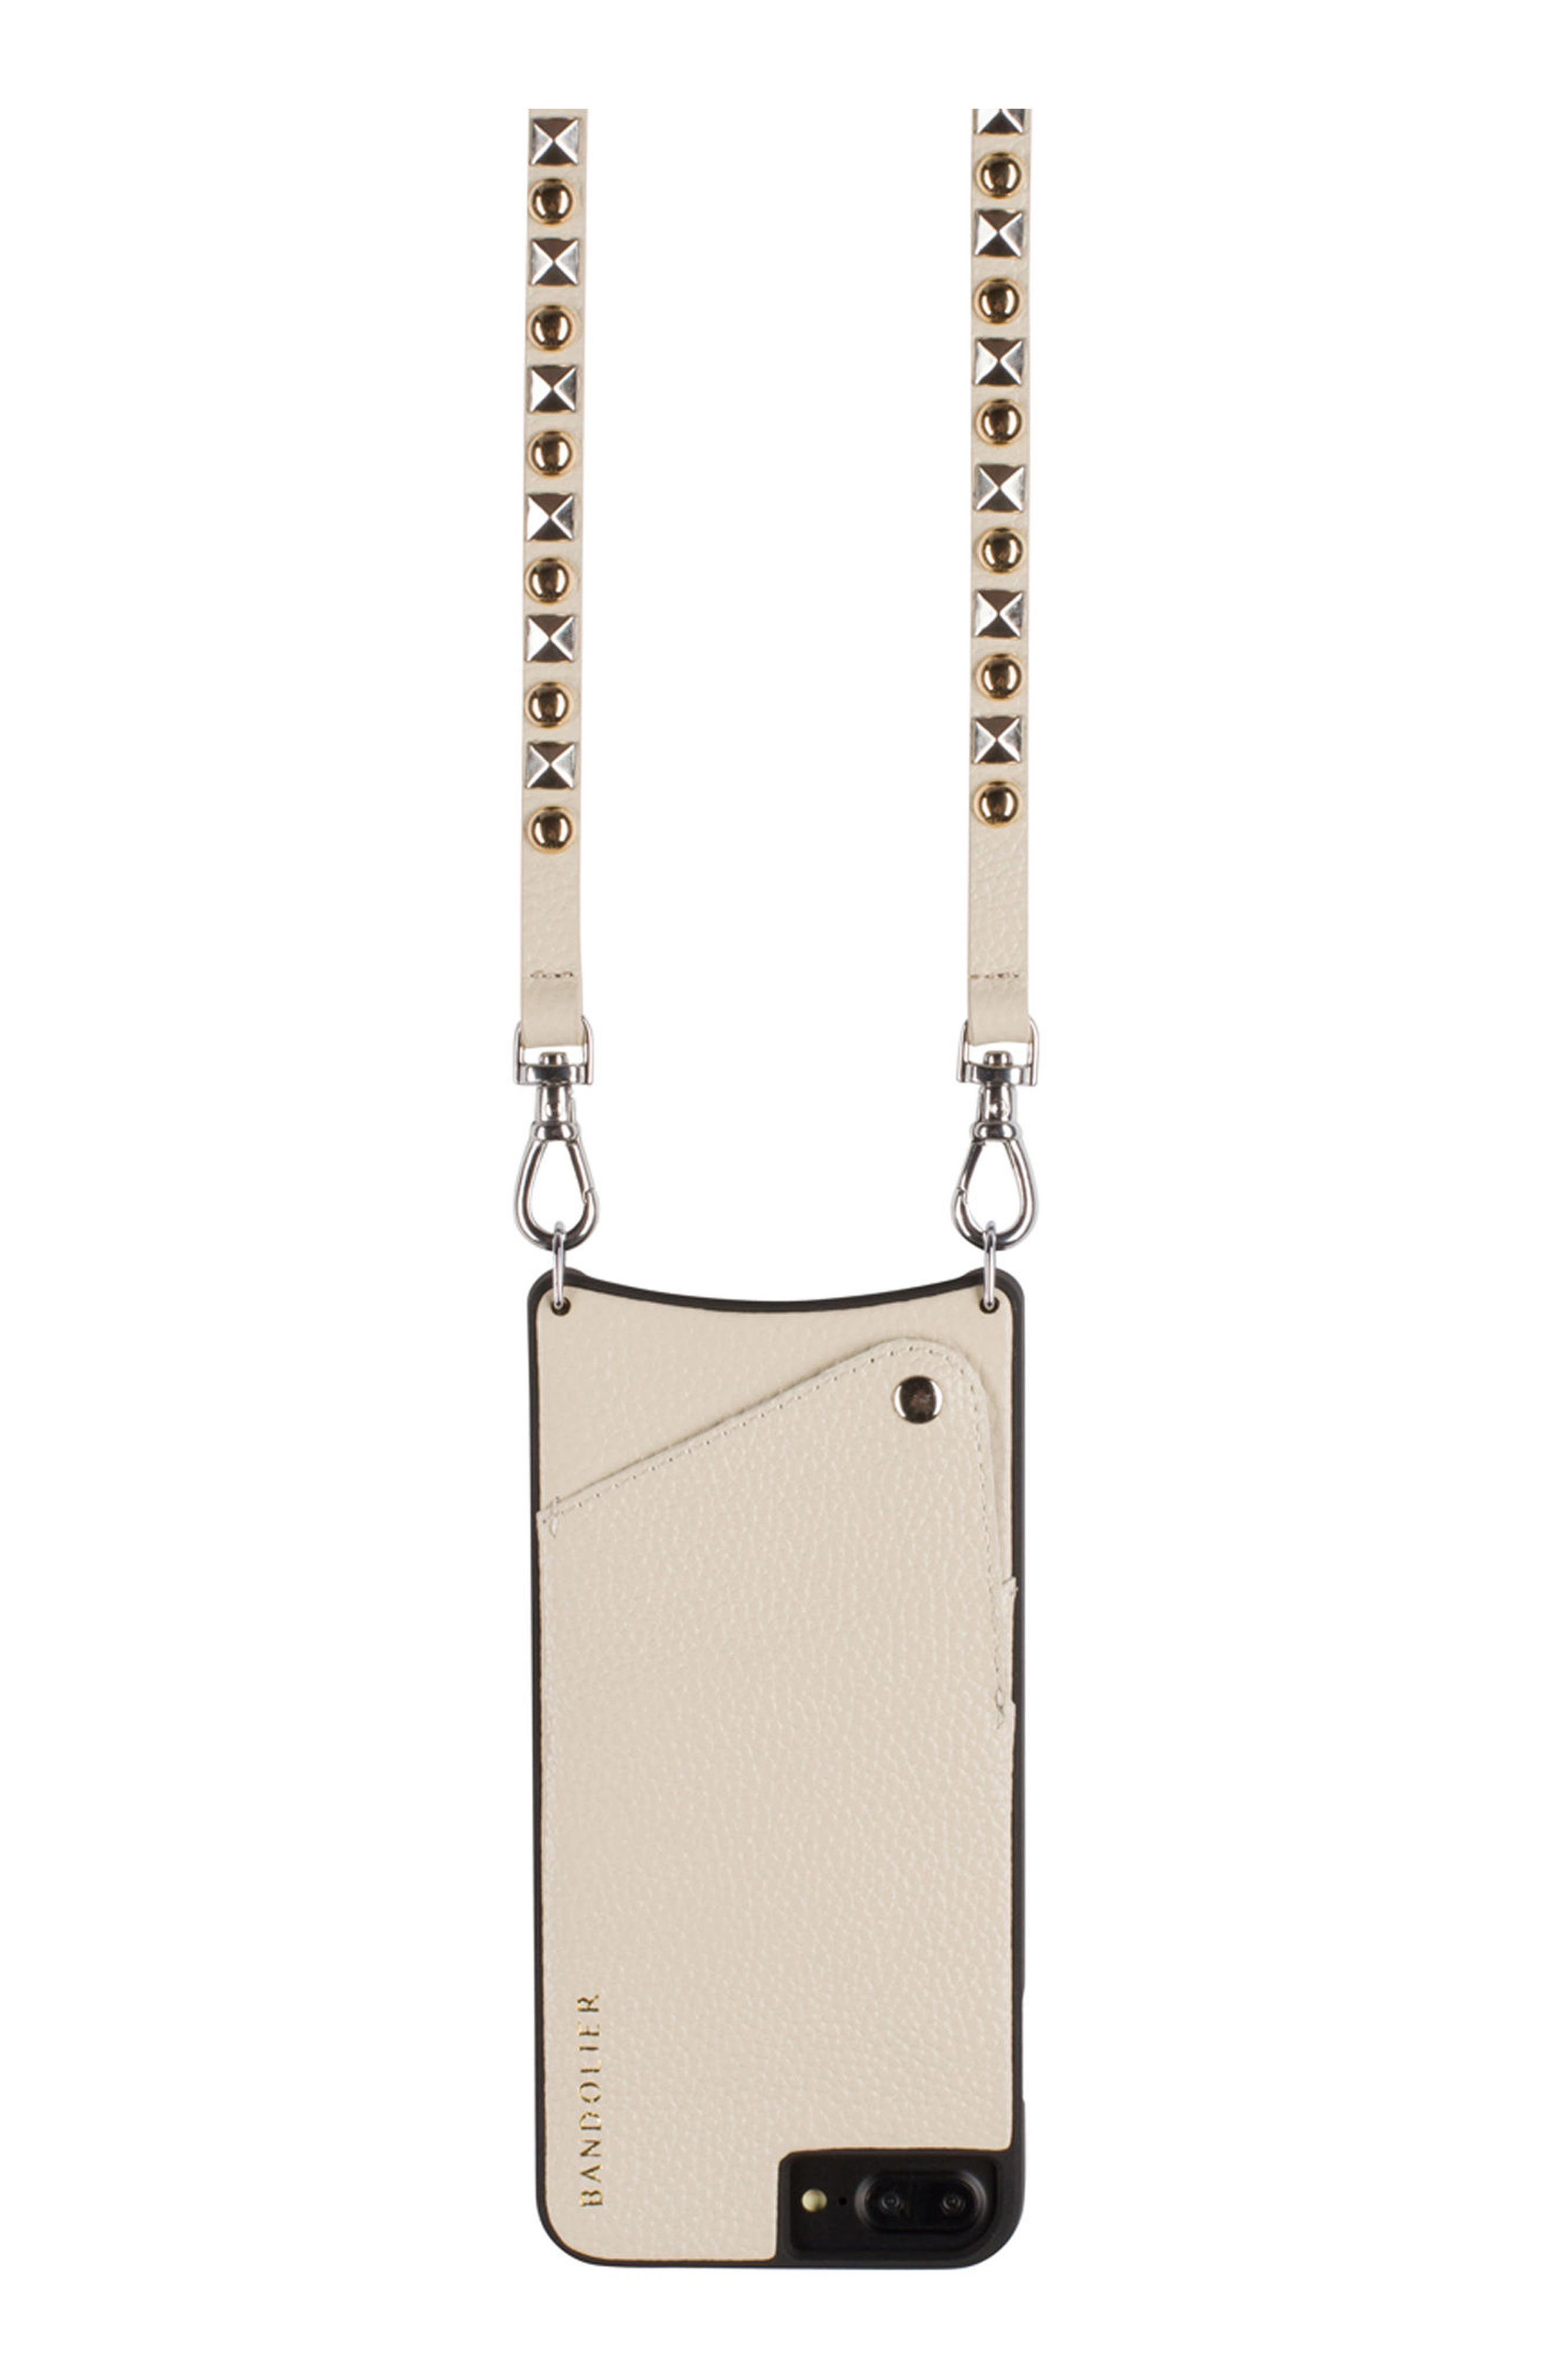 Stella iPhone 6/7/8 & 6/7/8 Plus Leather Crossbody Case,                             Alternate thumbnail 4, color,                             Pebble/ Gold/ Silver